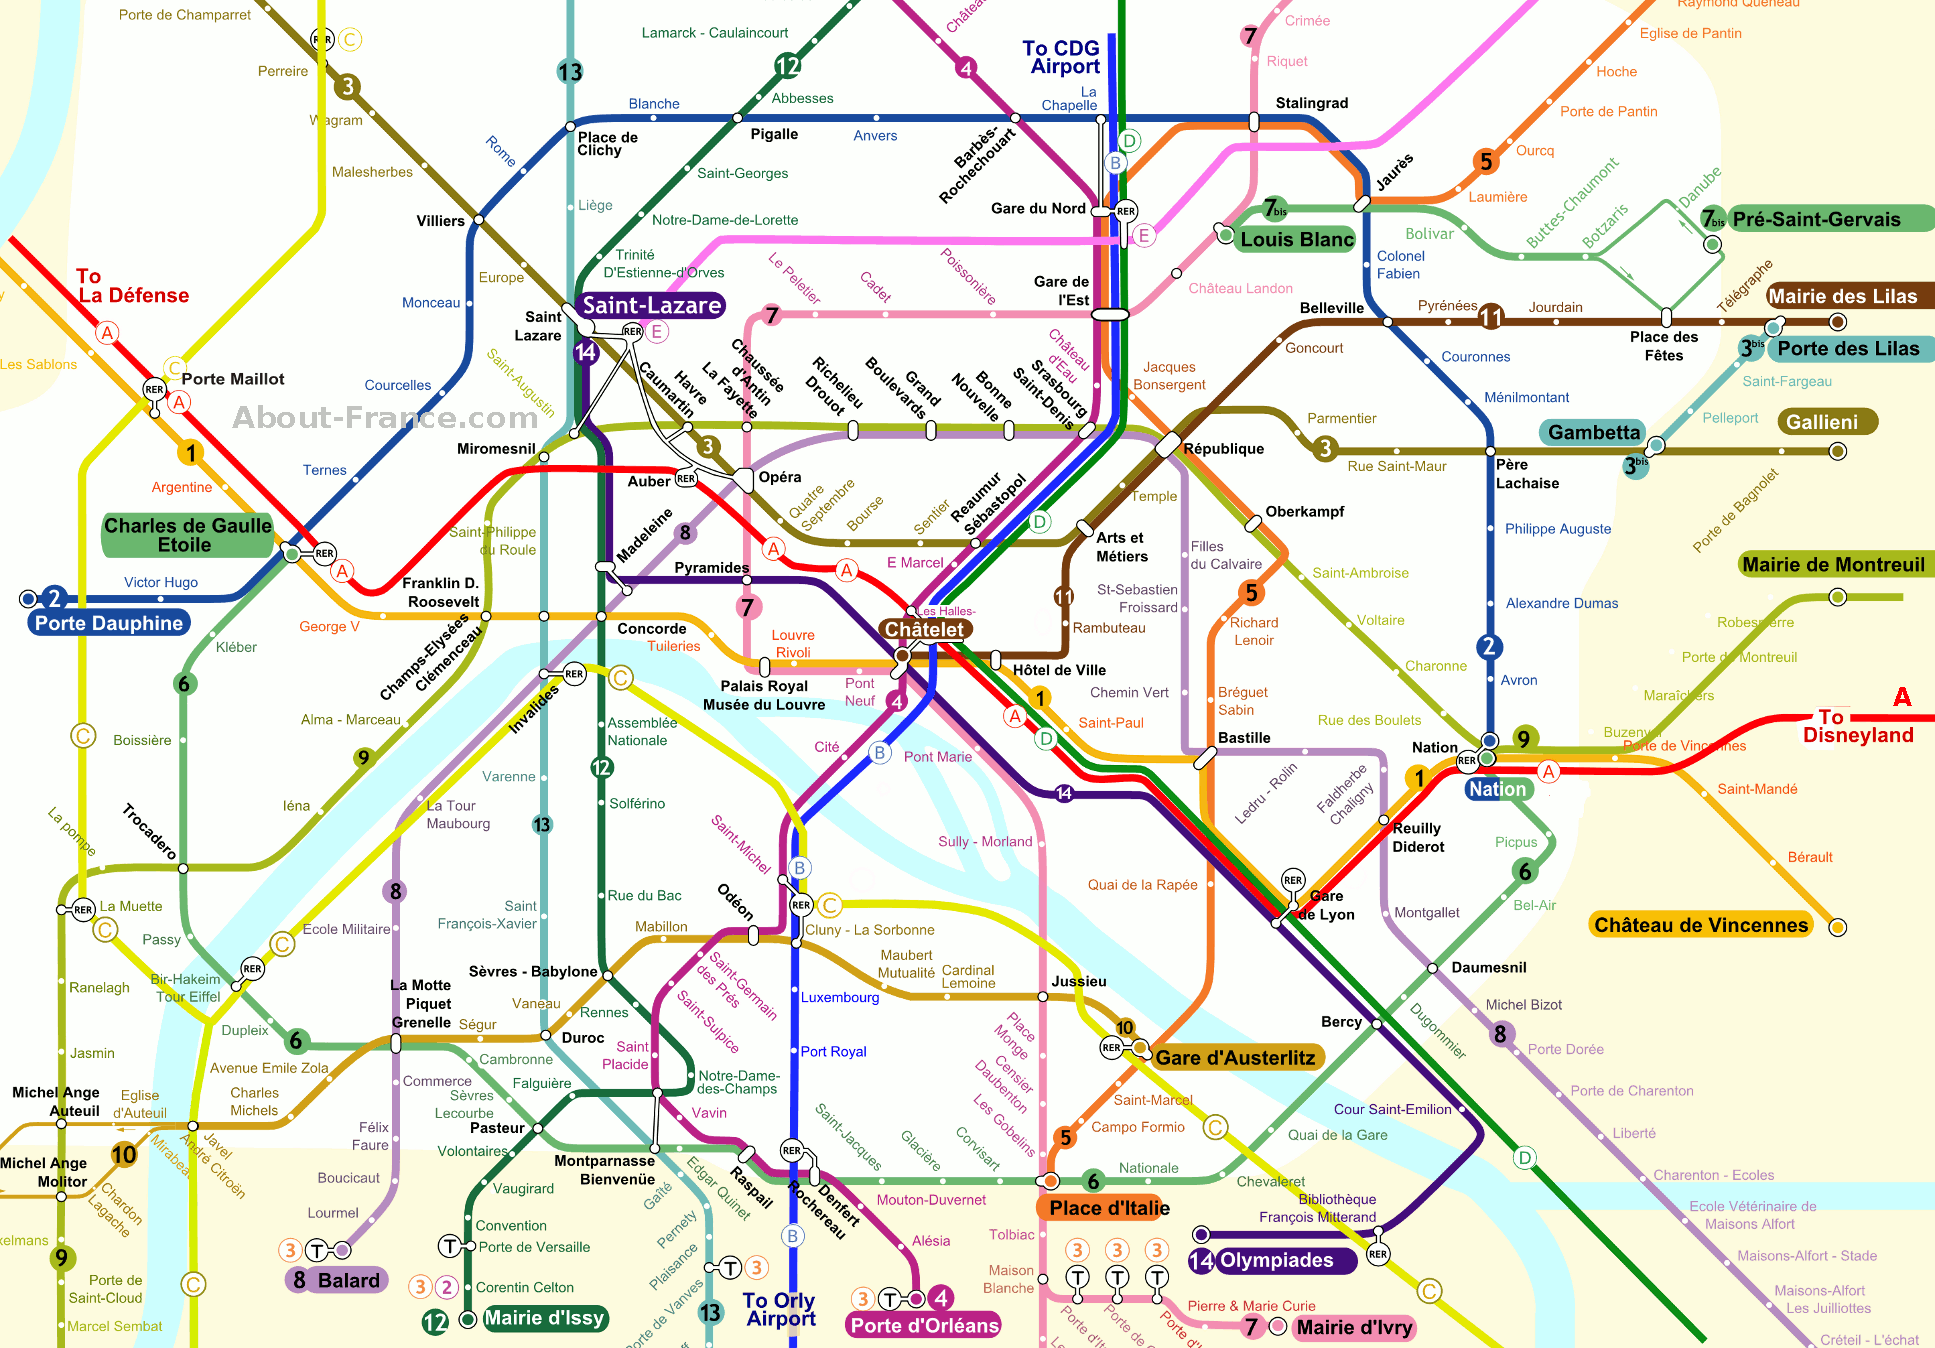 Central Paris metro map - About-France.com